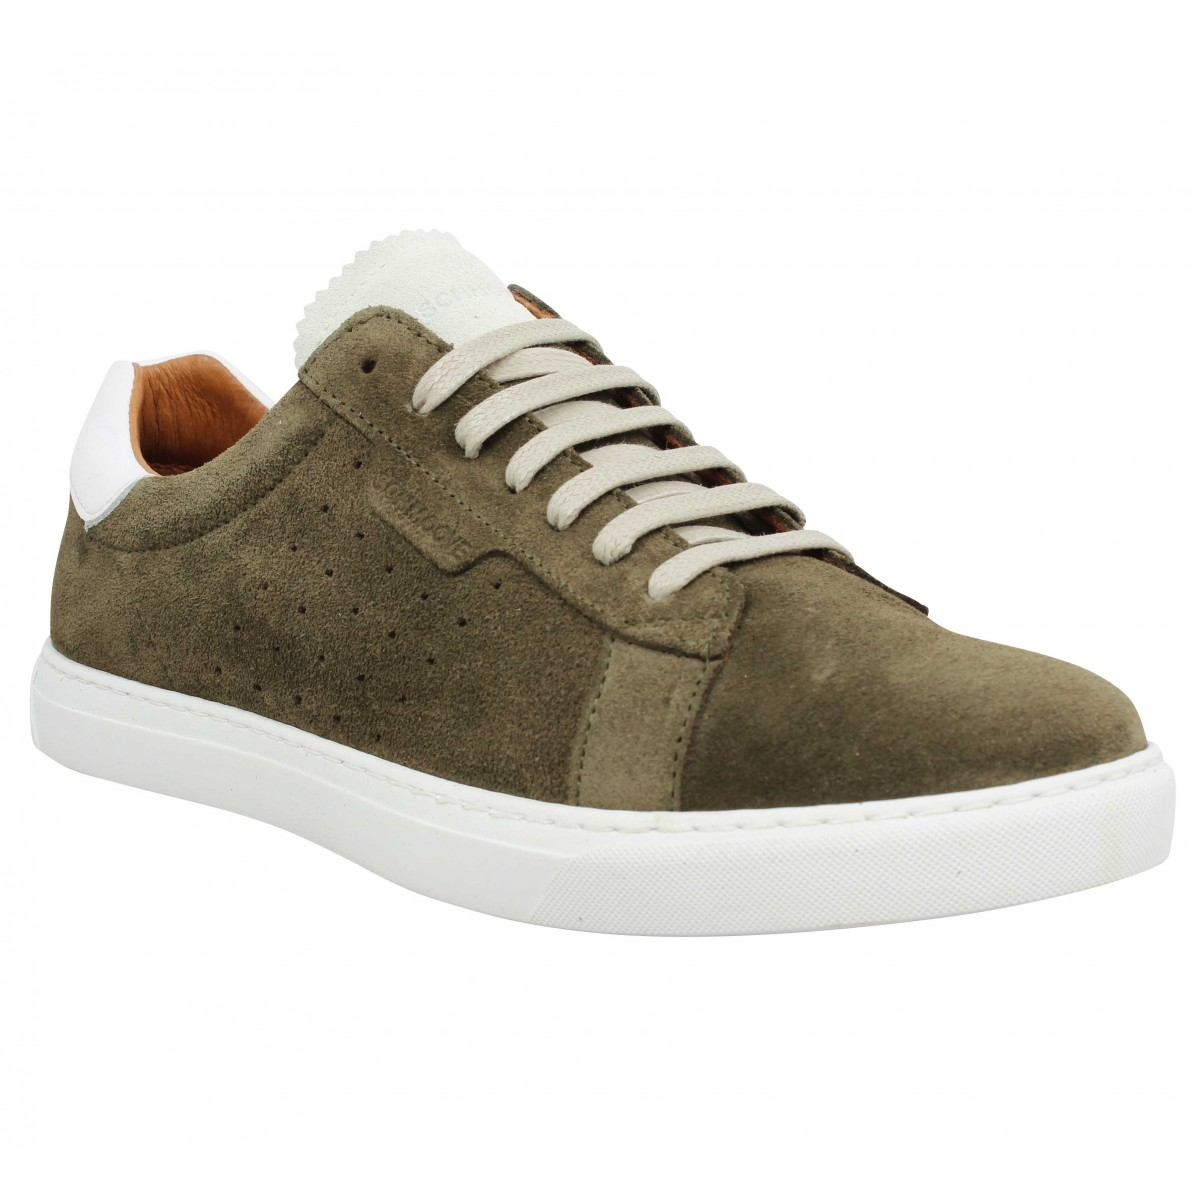 Baskets SCHMOOVE Cup Classic velours Homme Taupe